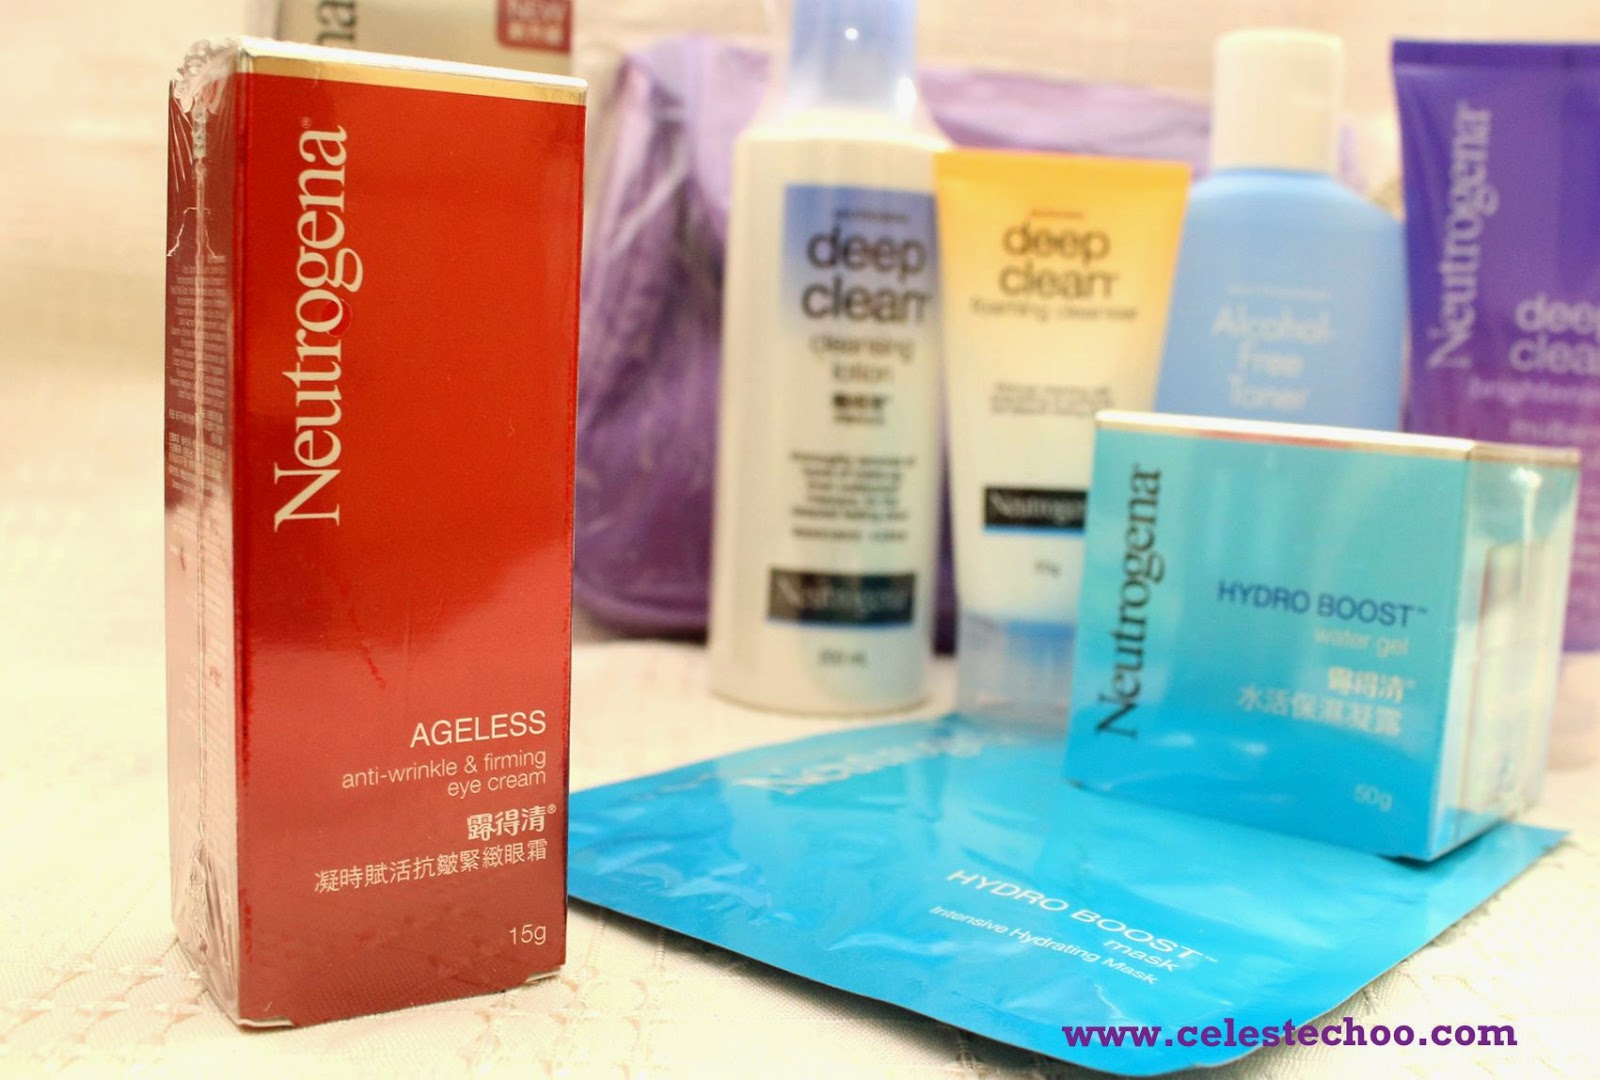 neutrogena_60th_anniversary_ageless_eye_cream